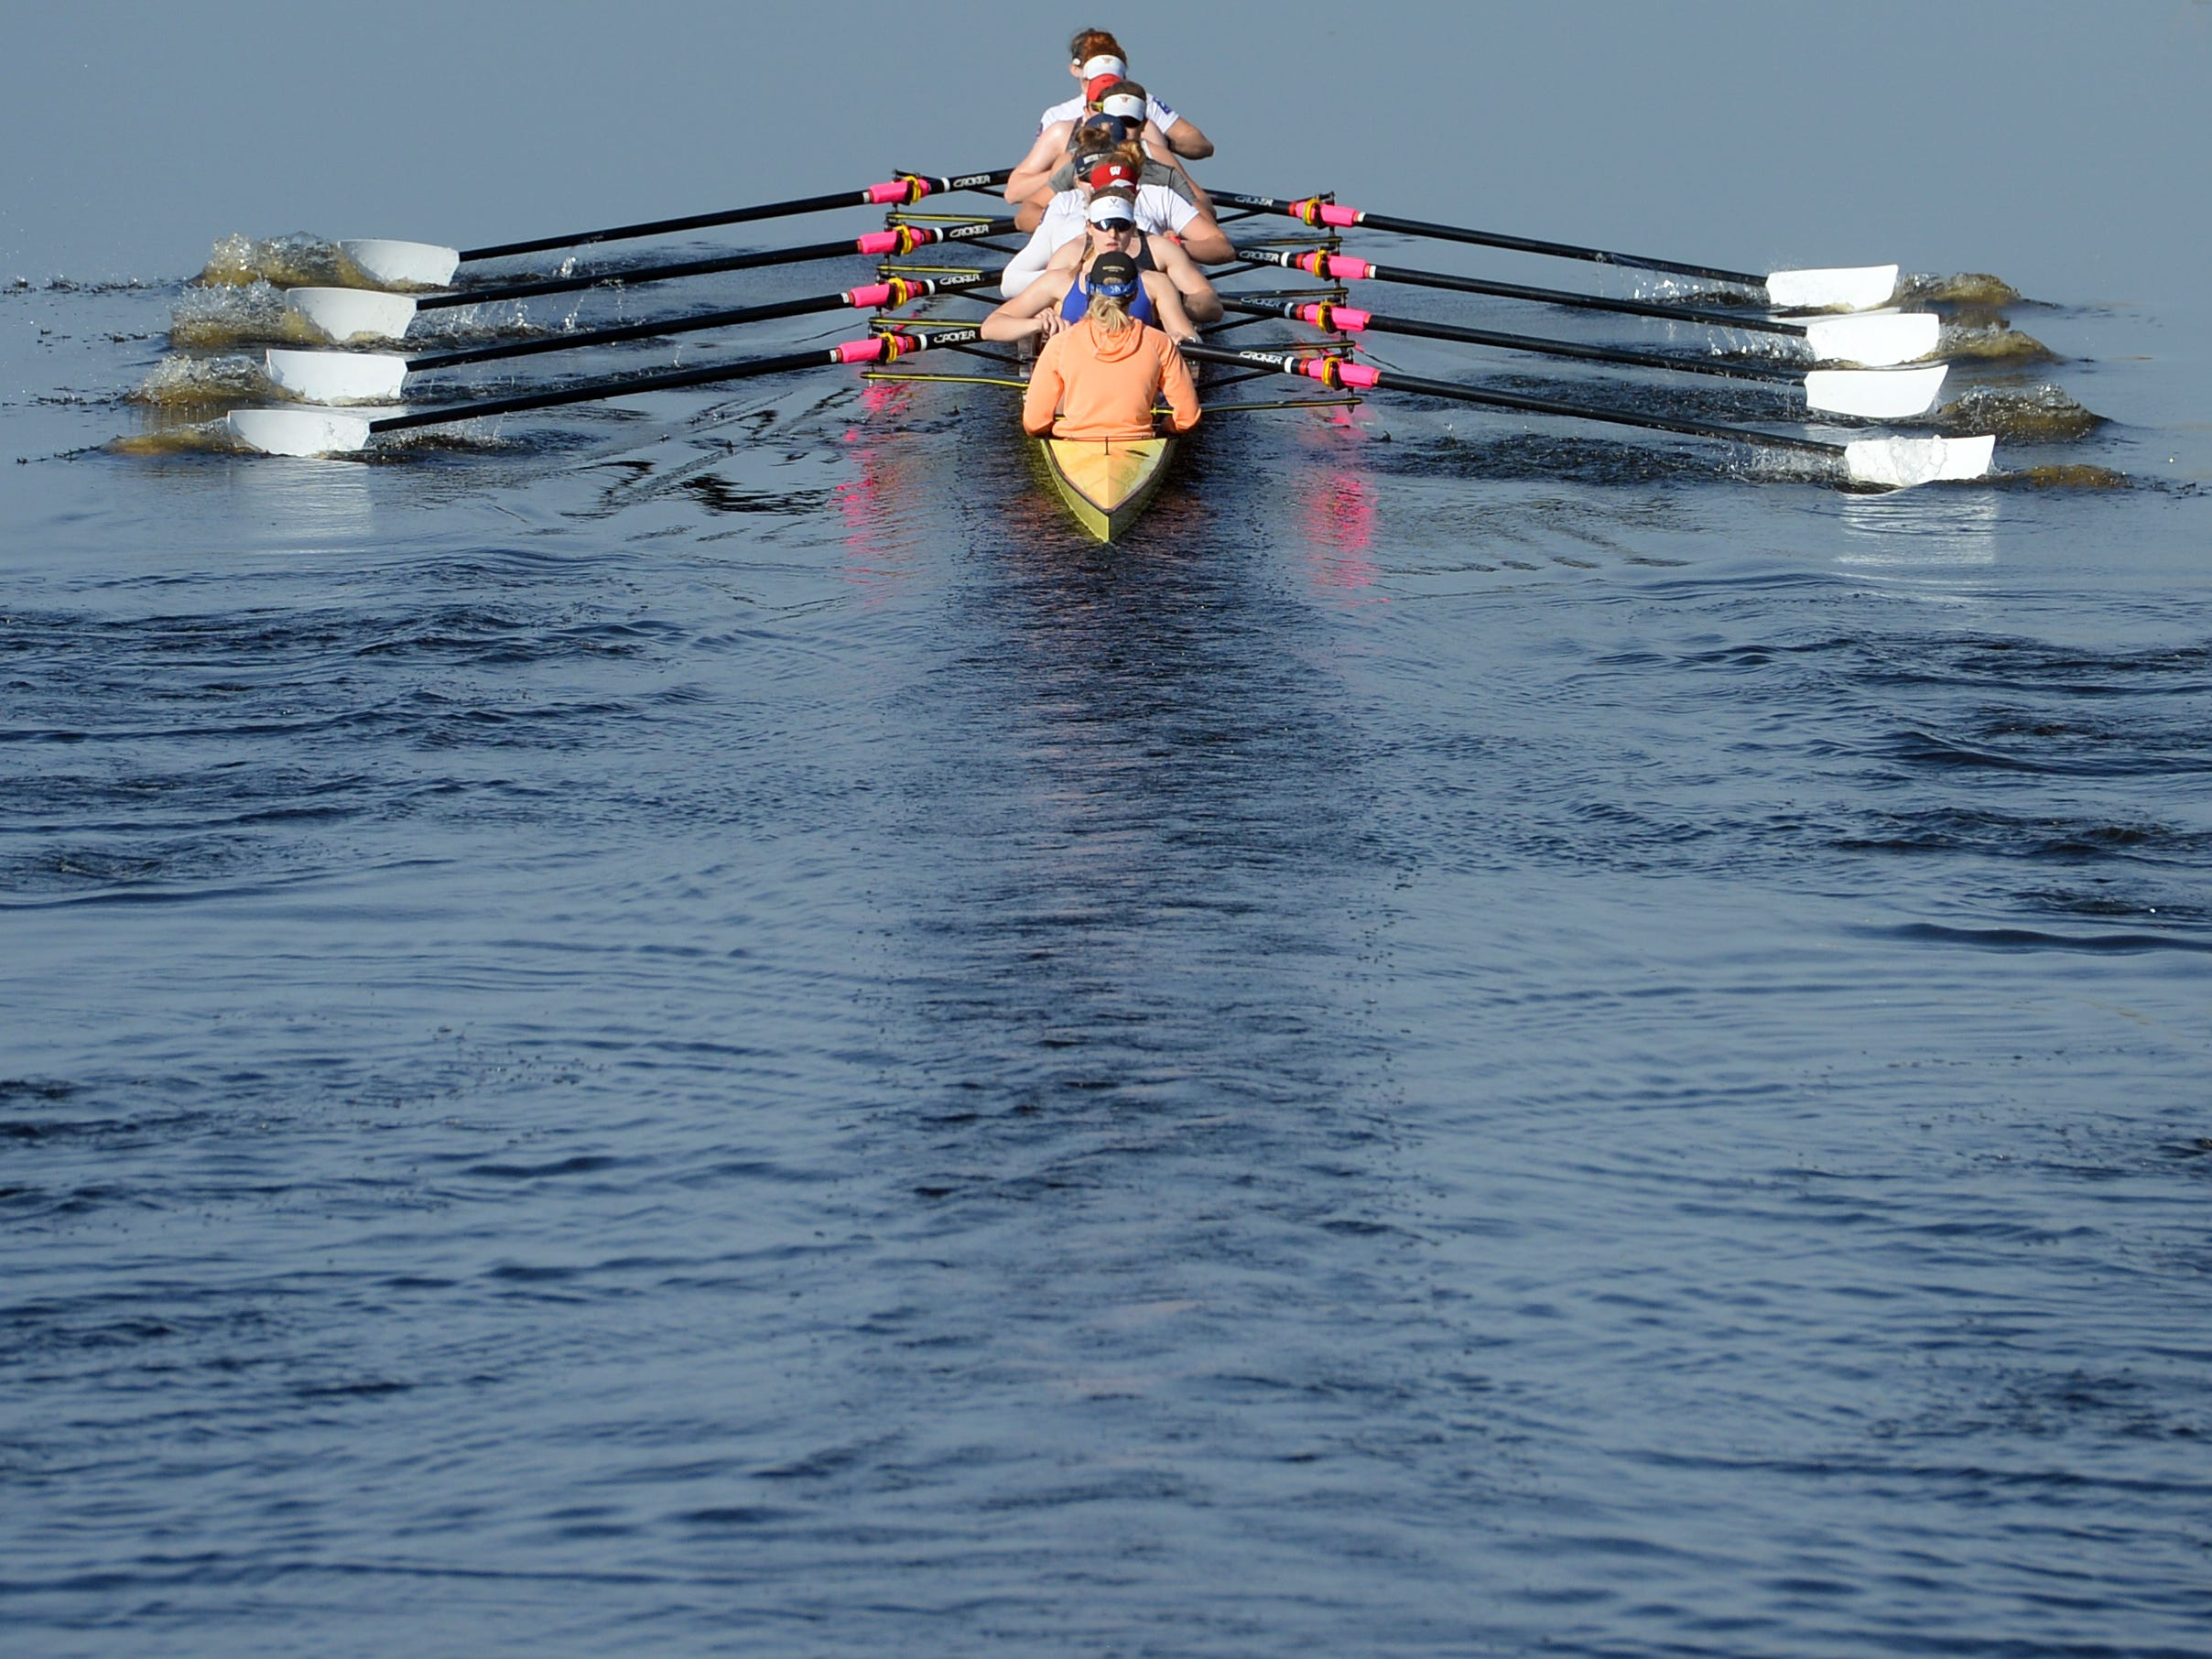 The U.S. Women's National Rowing Team is on a 10-day winter training session on the C-54 Canal north of Fellsmere. The warm temperatures, narrow waterway and lack of wind and wave disturbance makes the canal an ideal place to hold practice.